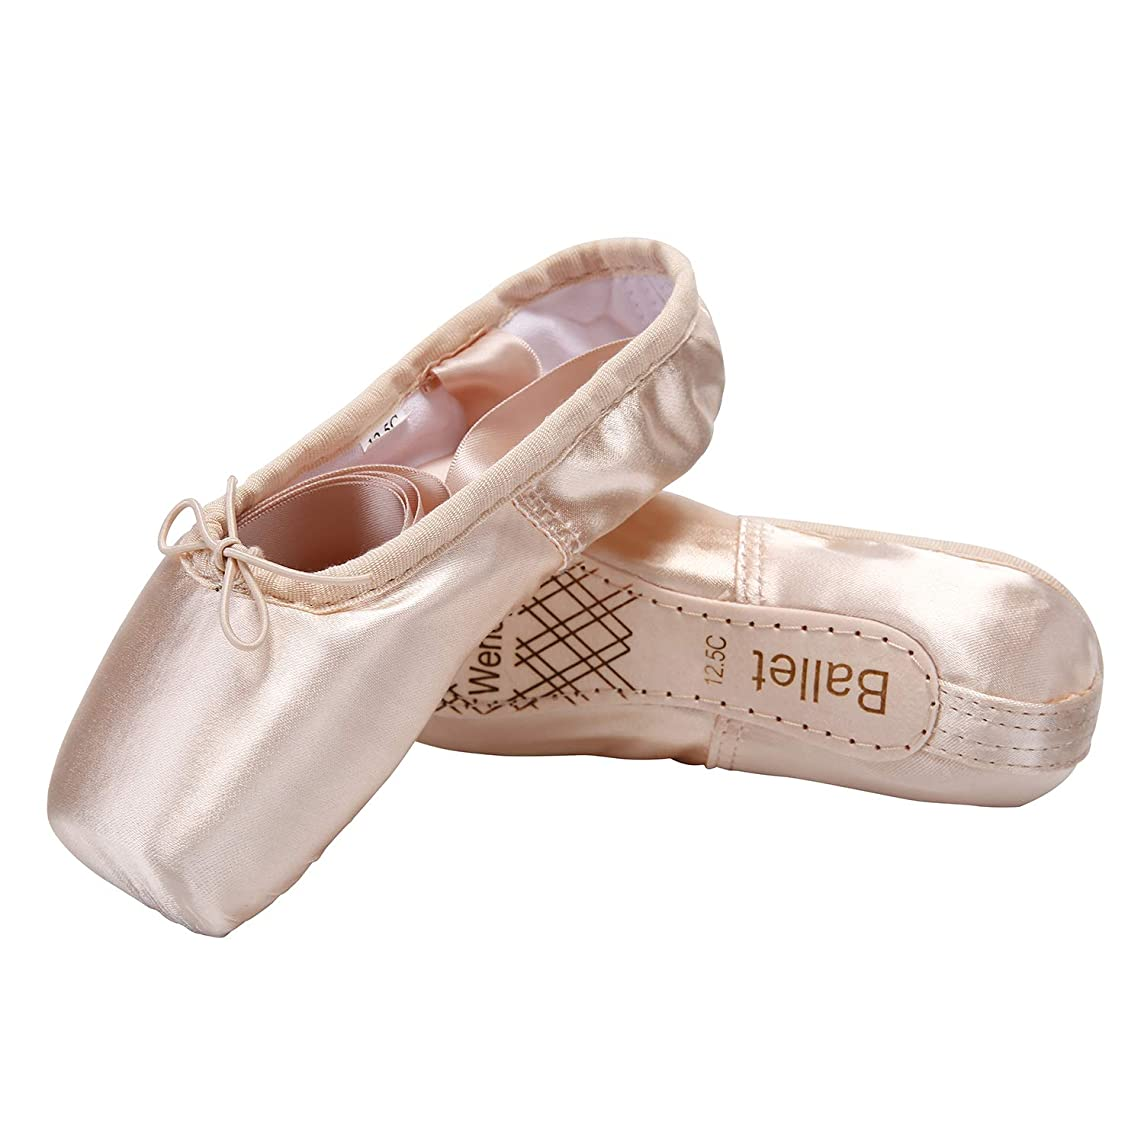 Wendy Wu Girls Womens Dance Shoe Pink Ballet Pointe Slippers Ballet Flats Shoes with Ribbons Toe Pads Black Pink Red